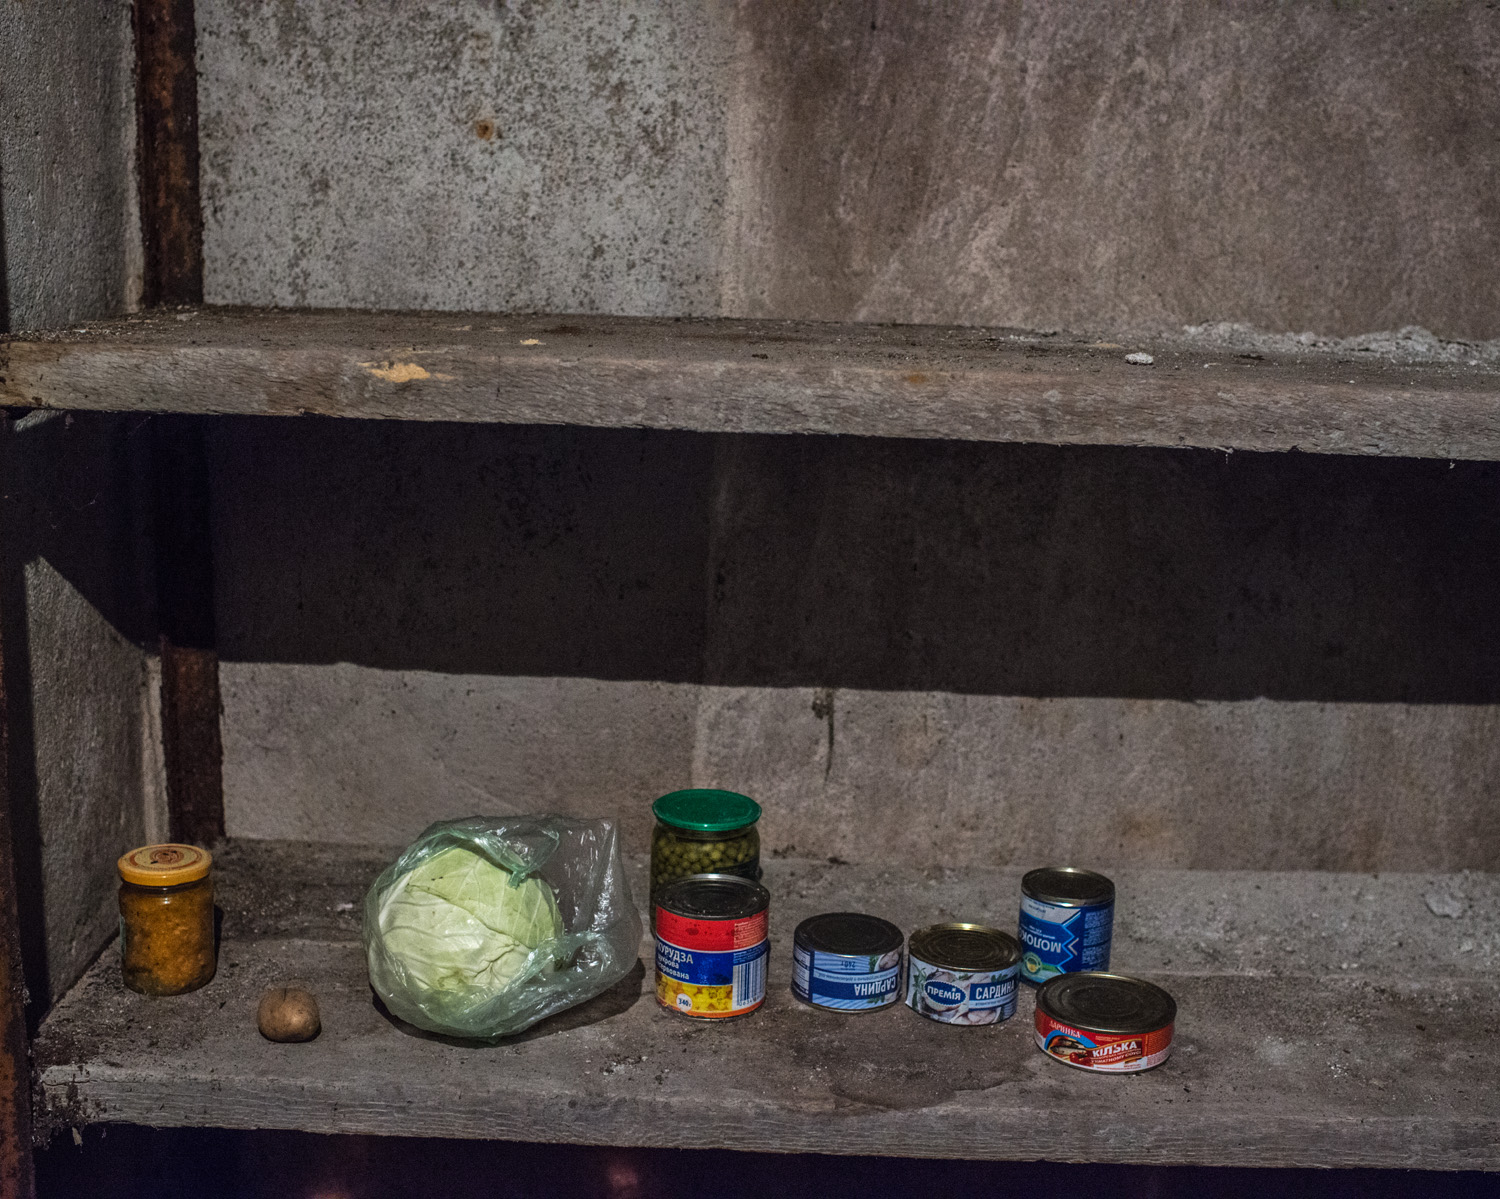 A bare cupboard in the village of Gnutove. Food prices have skyrocketed and deliveries to stores near the front line have grown less frequent. Increasingly, people must rely on food they've stored or are able to grow themselves.